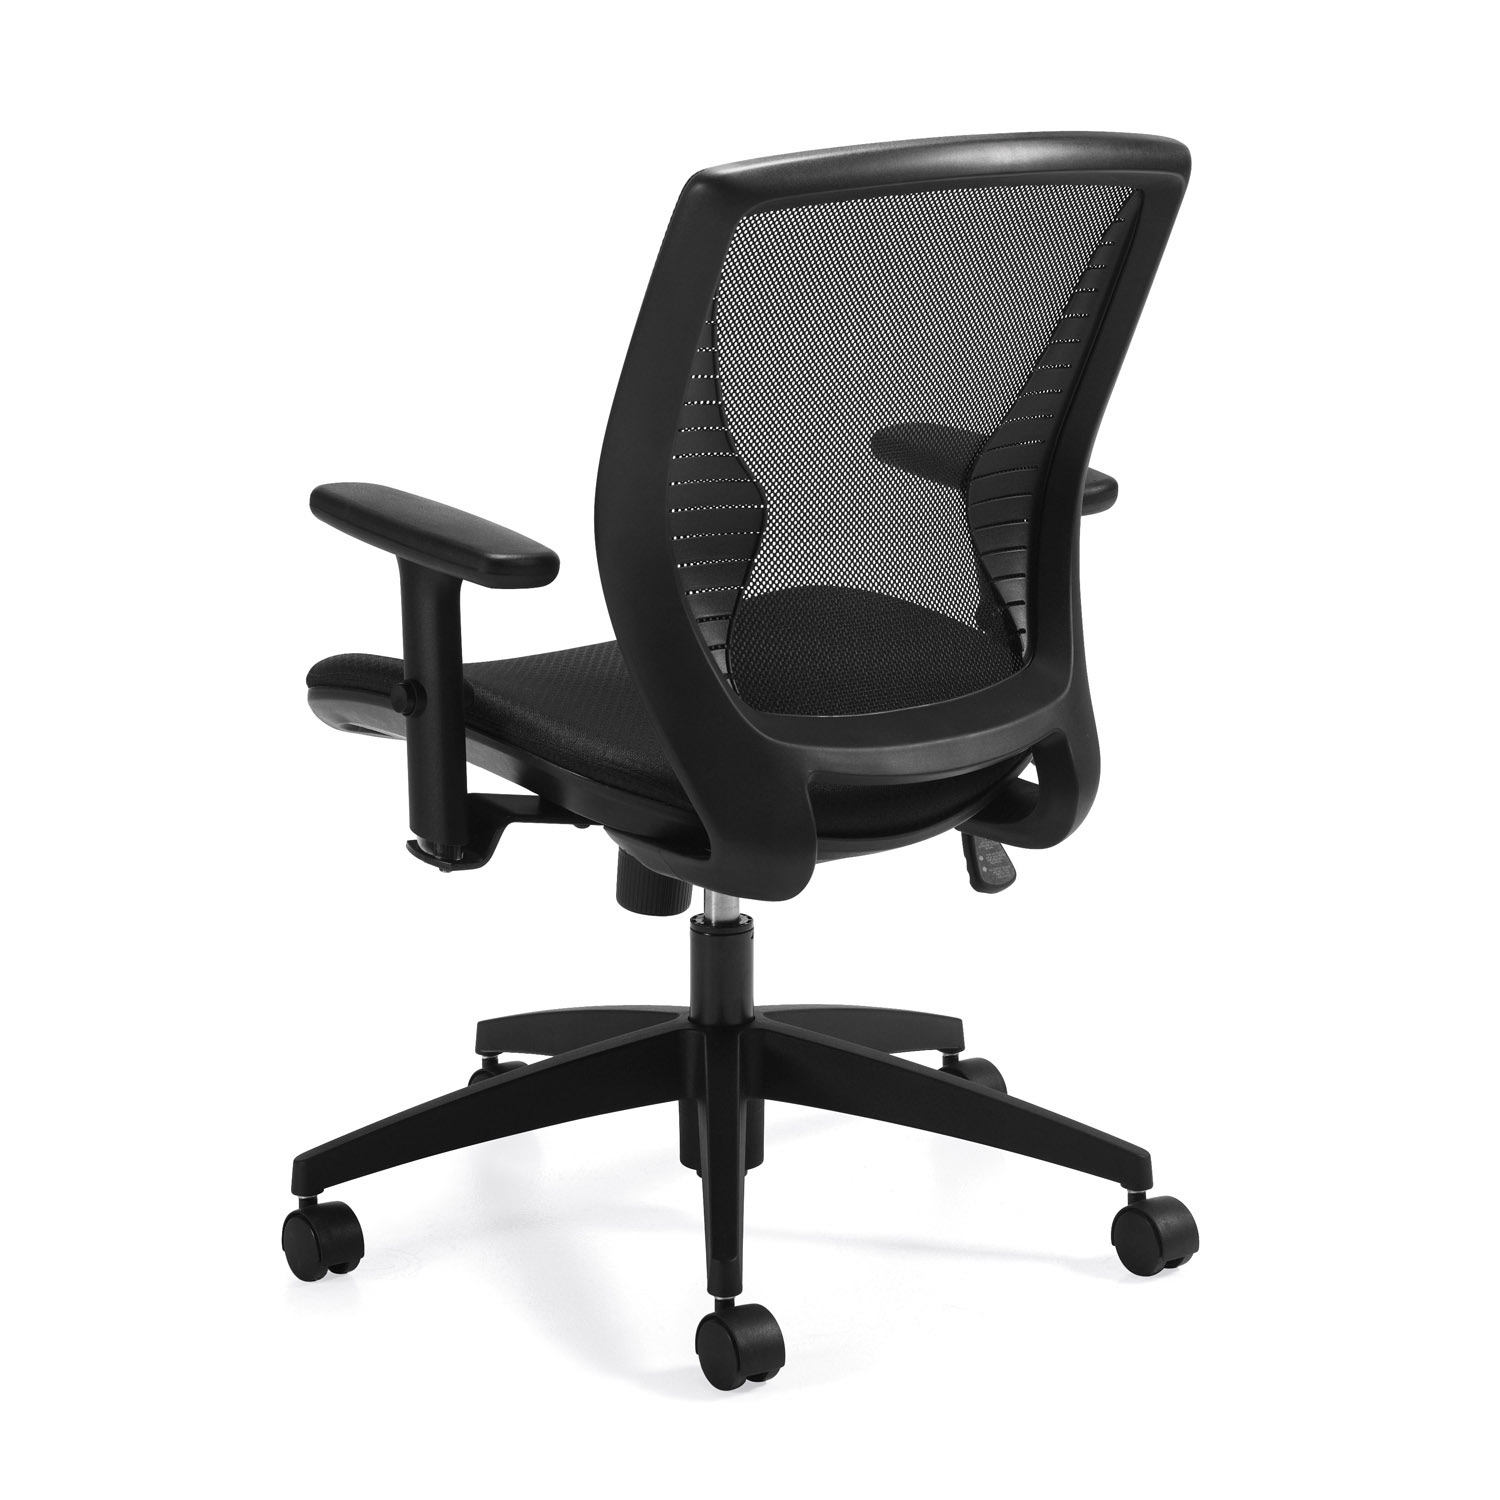 Mesh Desk Chair fice Desk Chairs fice Furniture Chairs